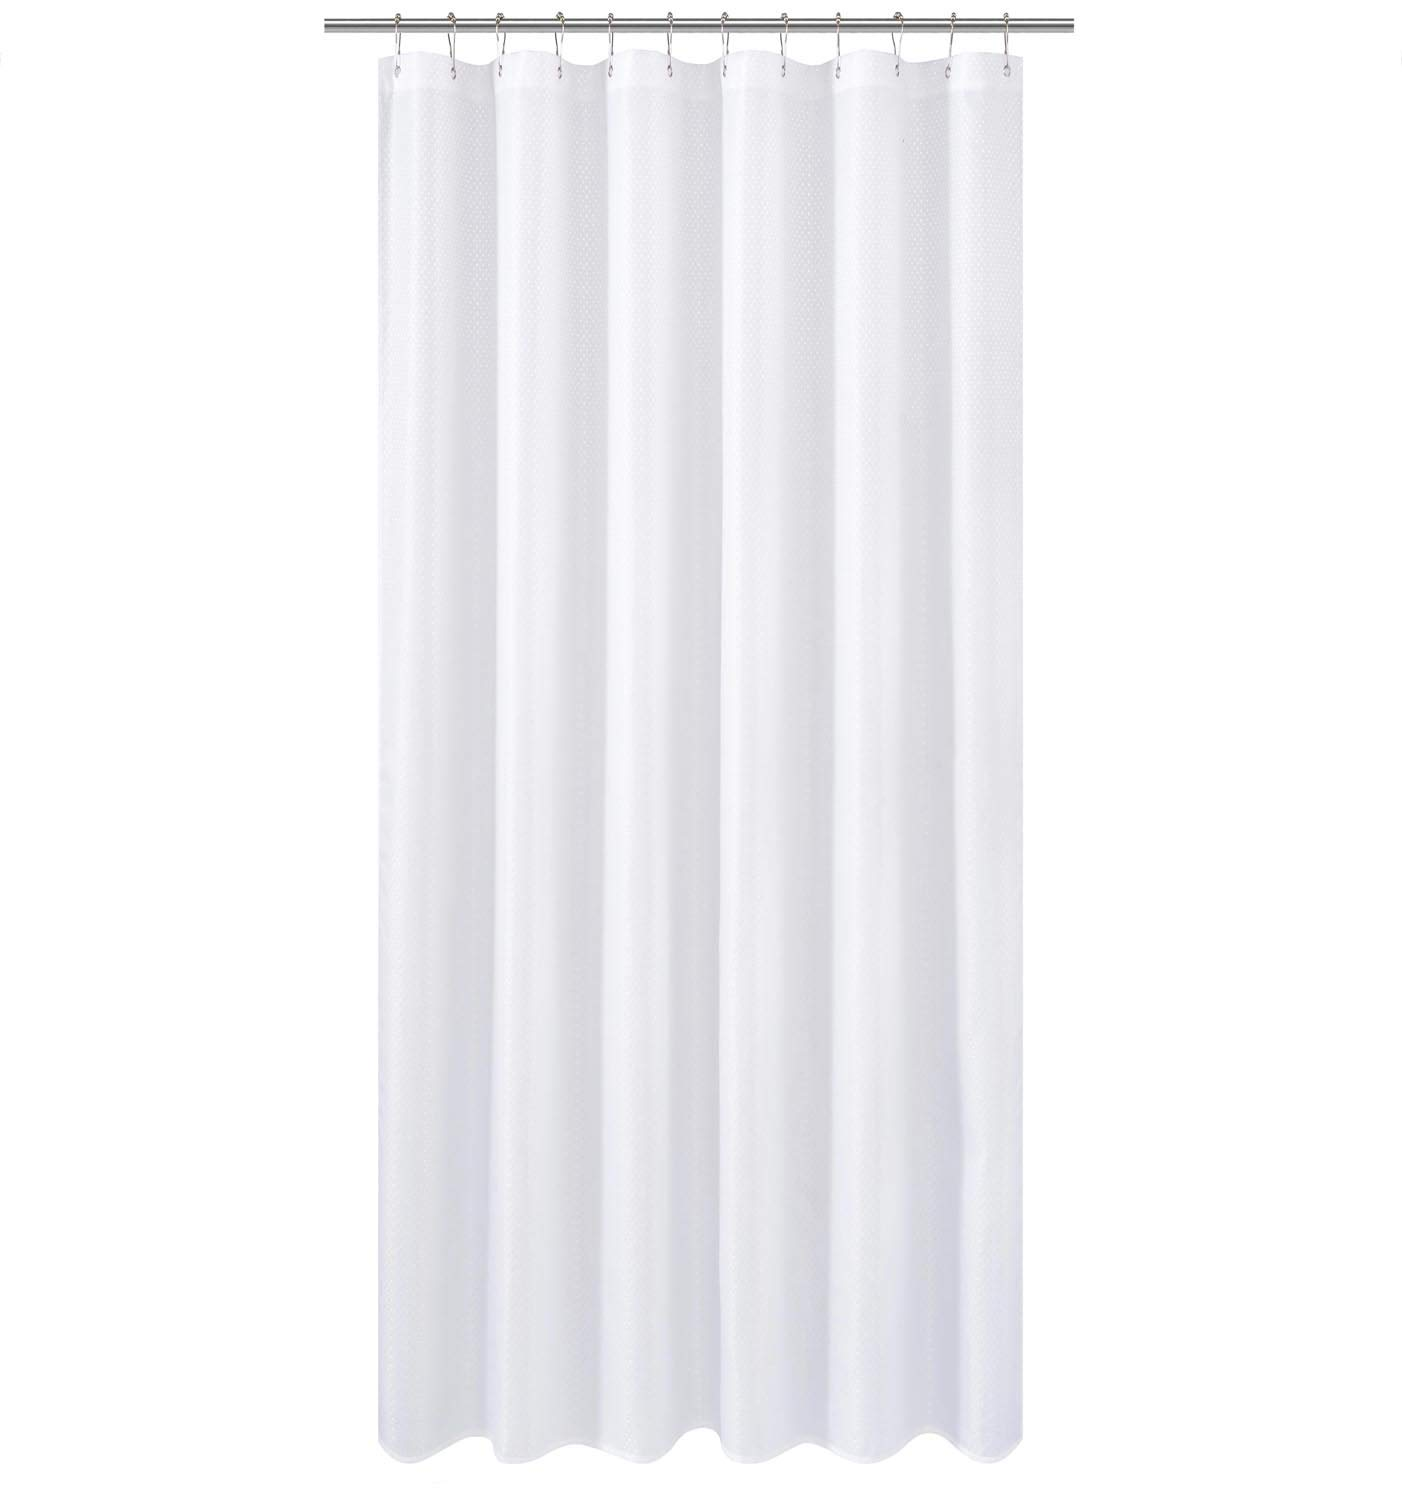 N&Y HOME Extra Long Fabric Shower Curtain or Liner 96 inches Height with Magnets, Hotel Quality, Washable, Water Repellent, Diamond Patterned White Bathroom Curtains with Grommets